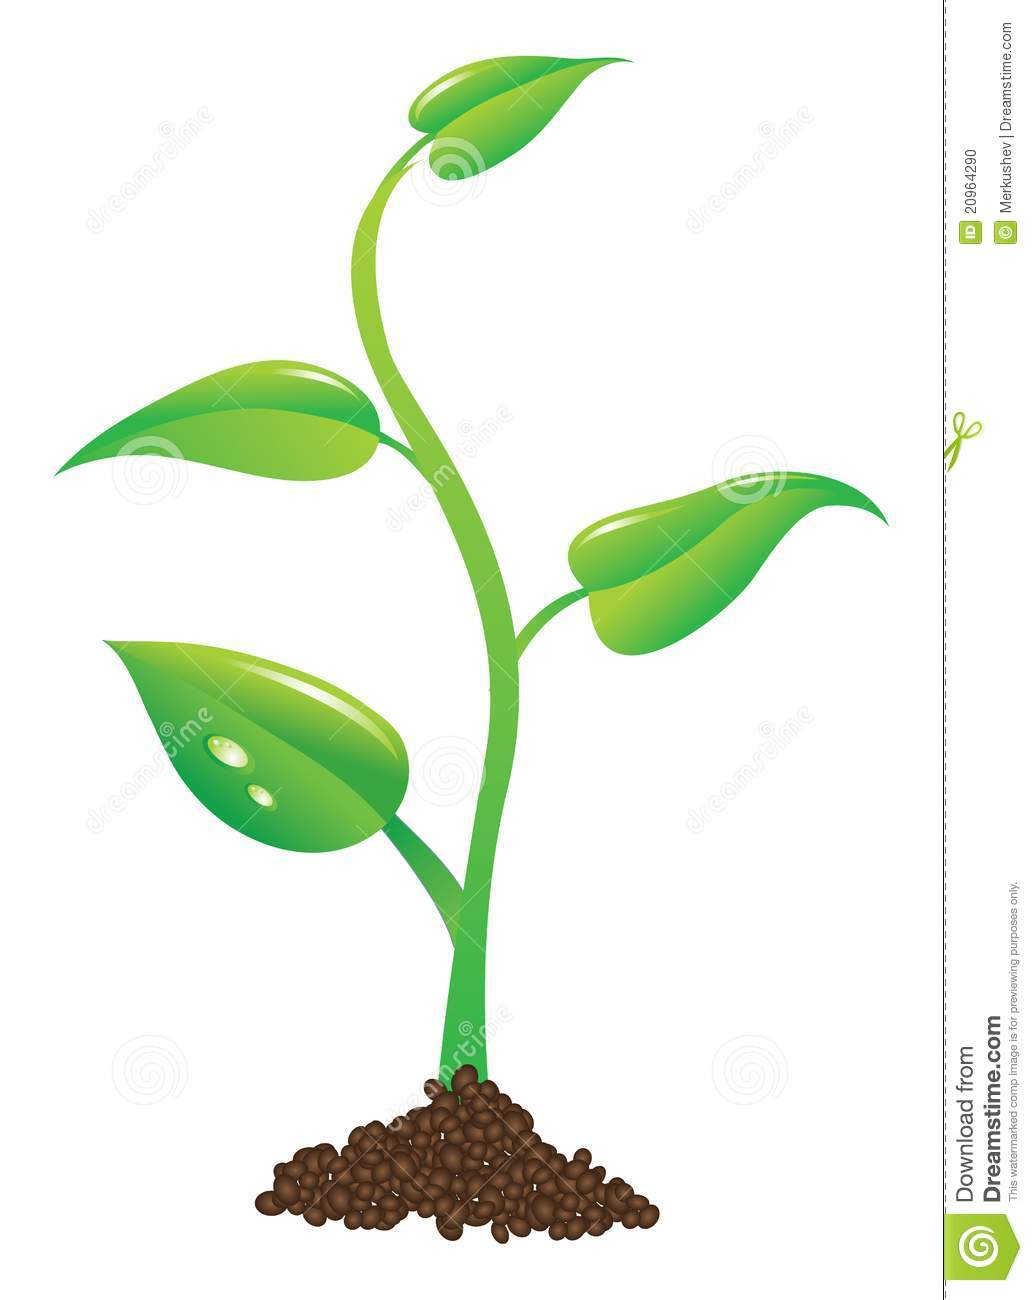 Plant clipart images png free library Cartoon Plant Clipart - Clipart Kid png free library